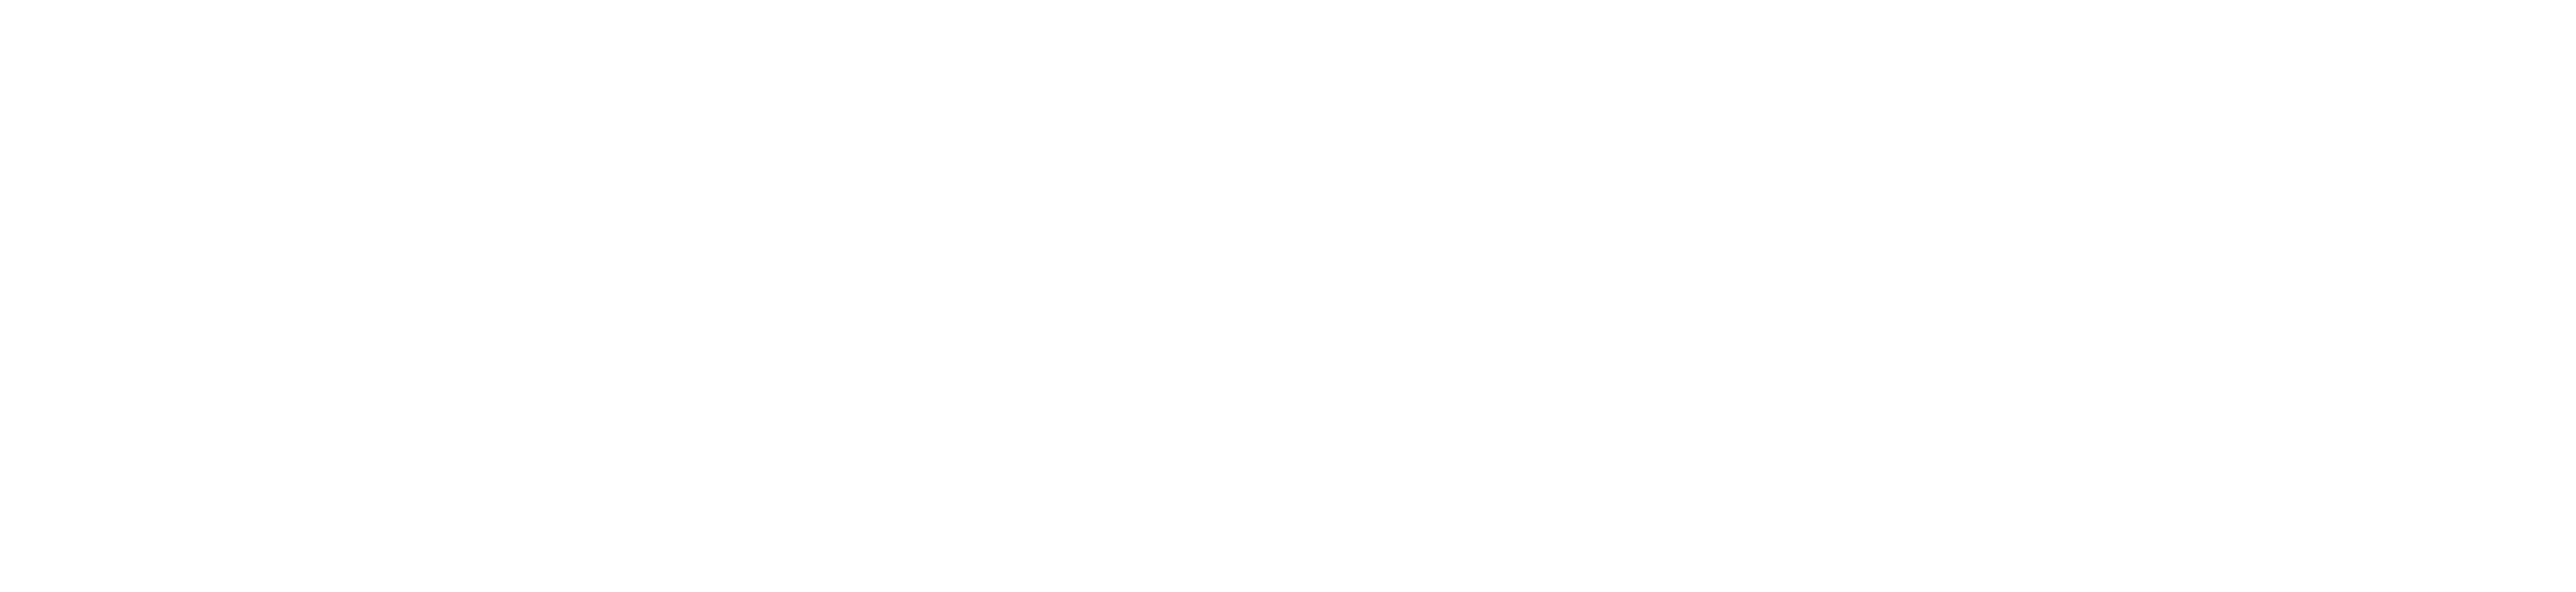 Abada Solutions is a data consulting firm that automates reporting processes and other menial tasks